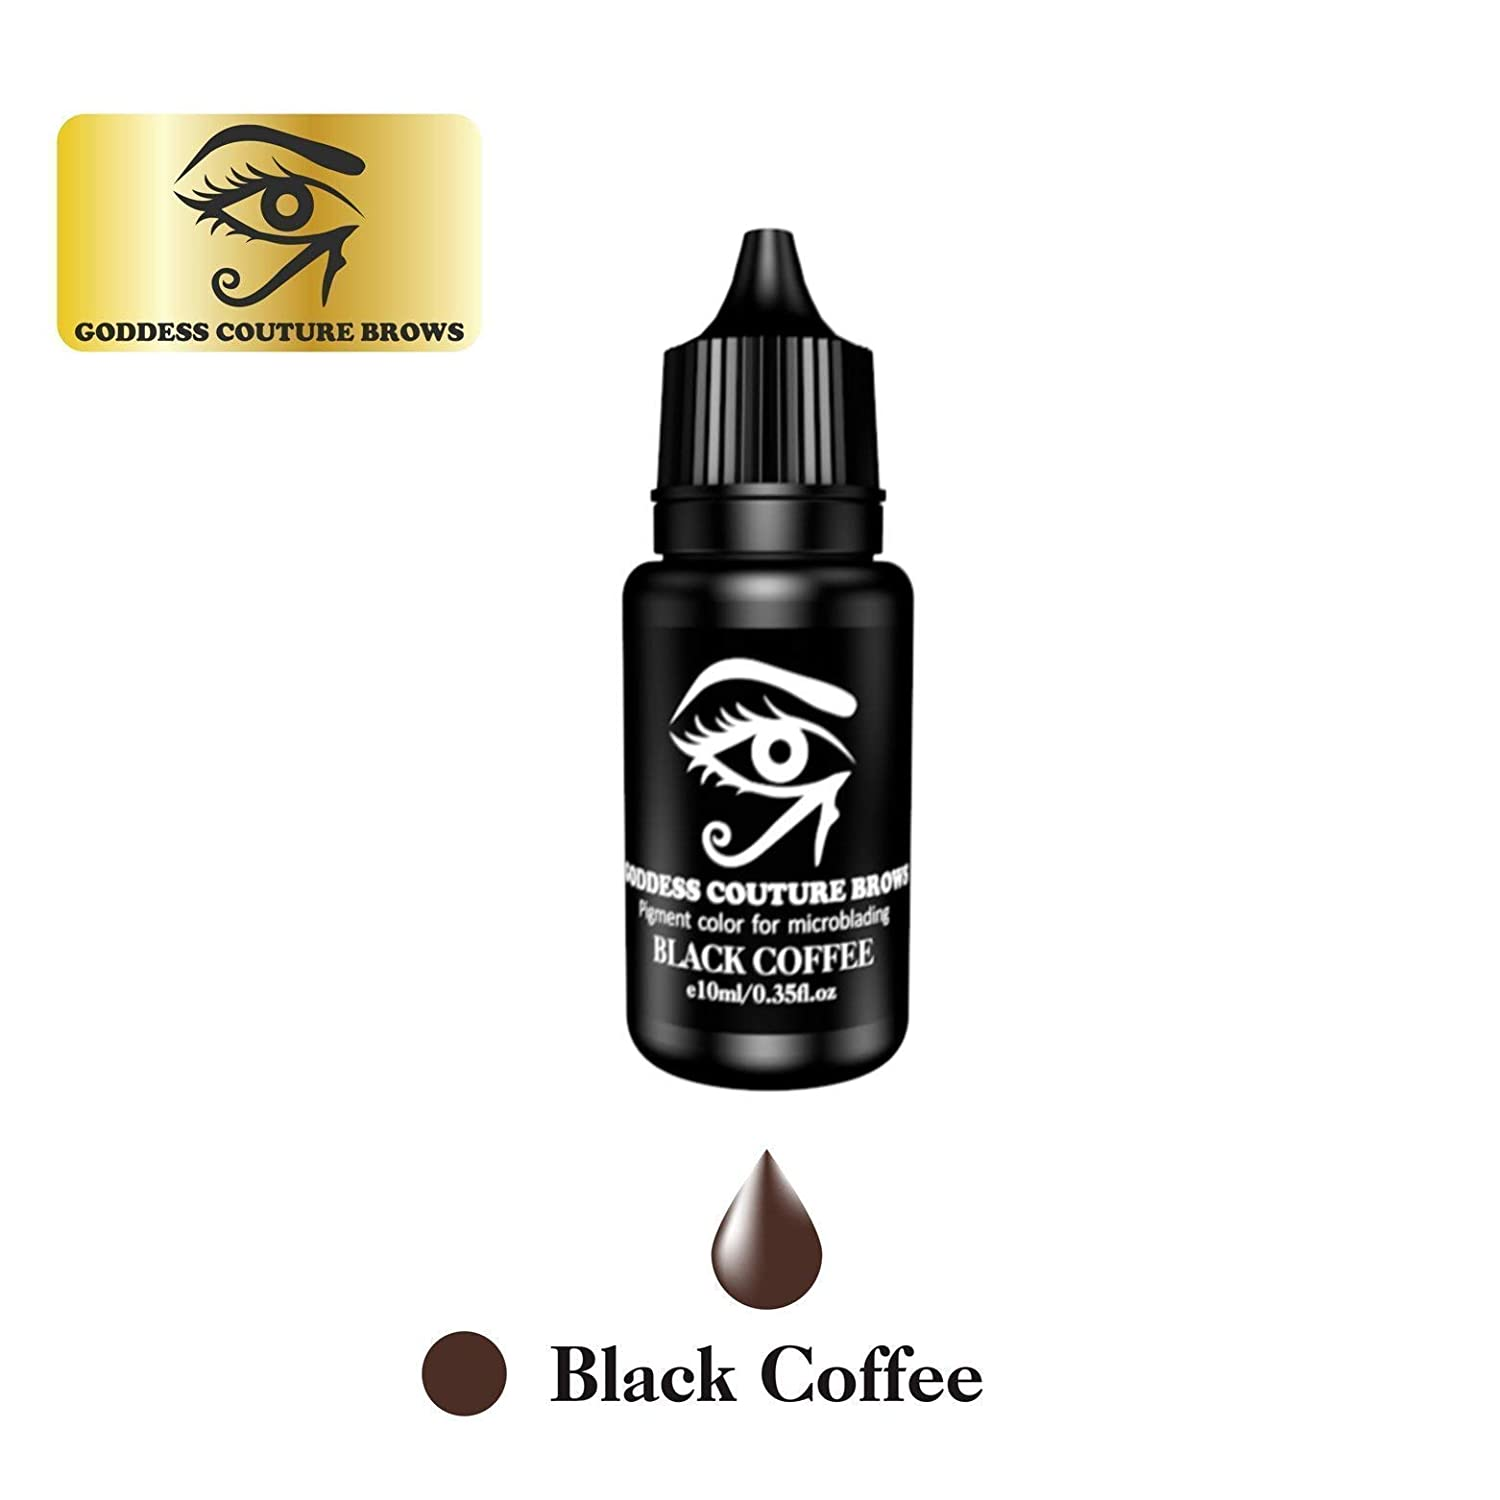 GODDESS COUTURE BROWS Microblading/Microshading Pigment | Organic Medical-Grade Permanent Makeup Tattoo Ink (Black Coffee) | 10ml